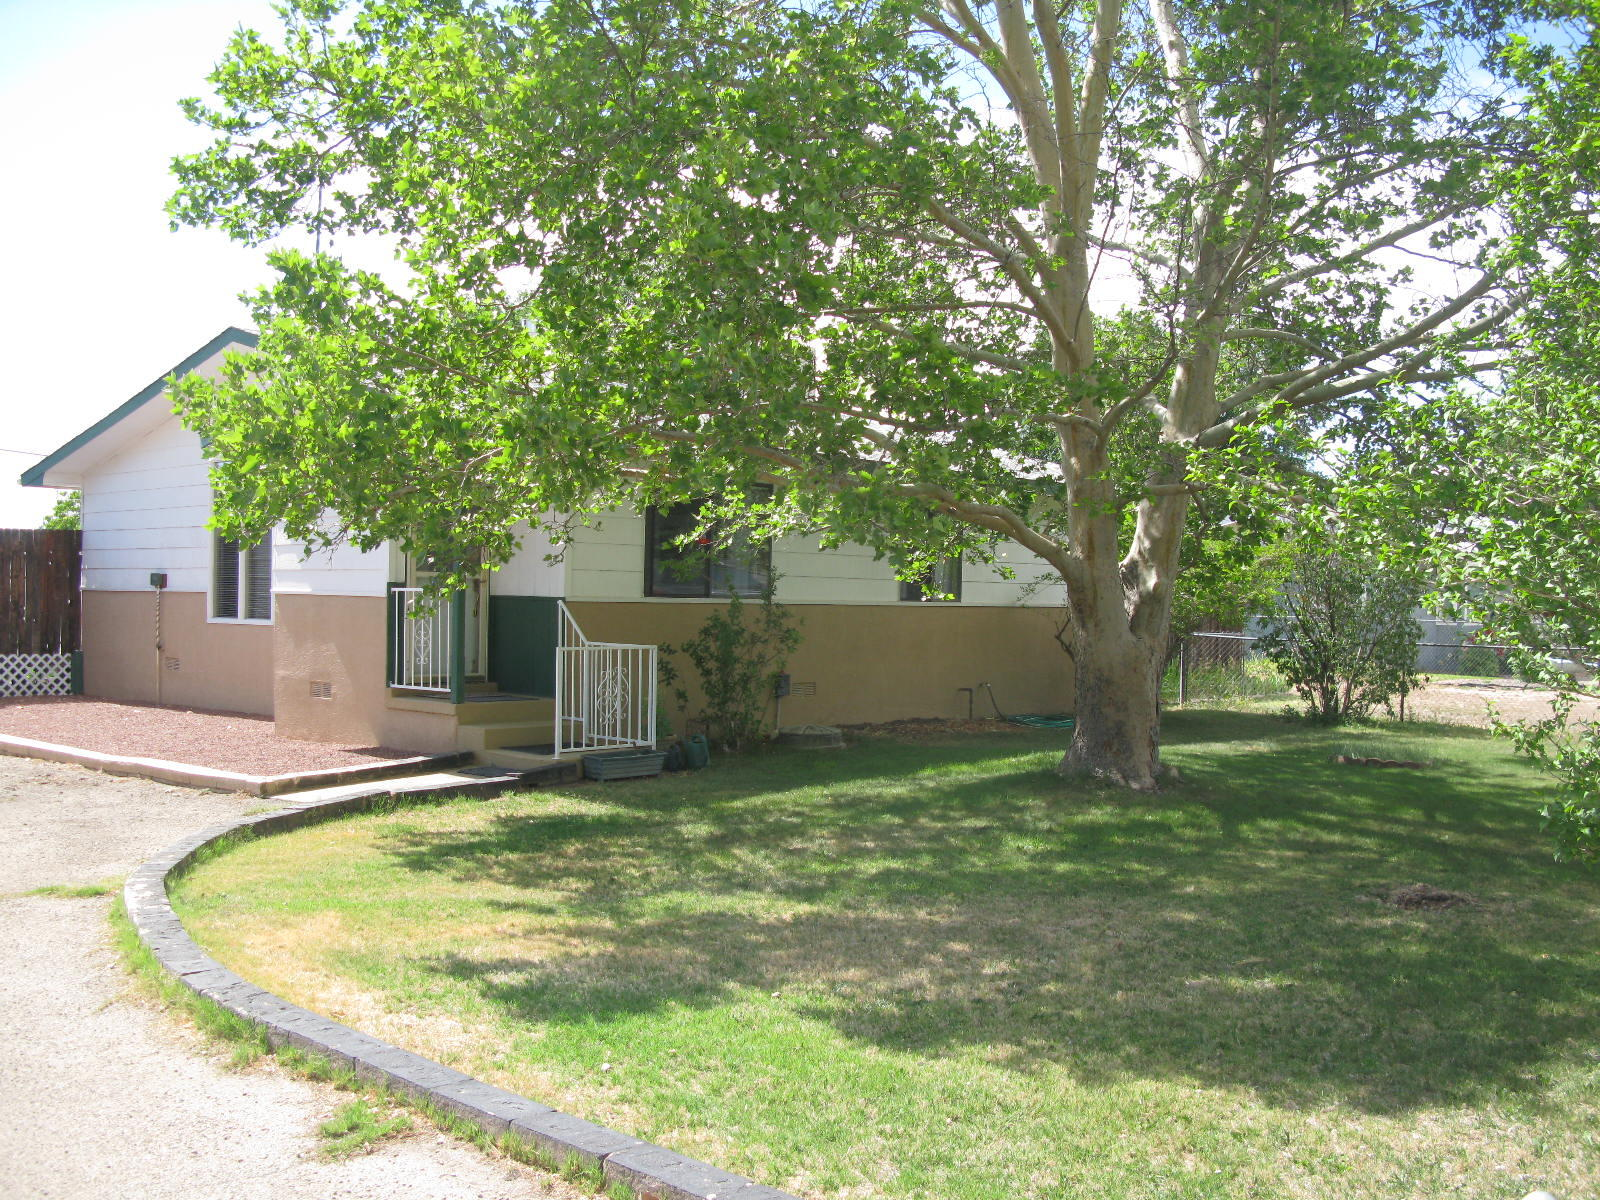 Adorable Bosque Farms Cottage! Beautifully maintained home on spacious one-half acre in Bosque Farms. Kitchen updates include new backsplash, sink, faucet, and gorgeous English red-oak flooring. Large master bedroom with an updated master bath. Relax on the back deck or two additional open patios and enjoy the greenery. Three storage buildings. Detached two-car garage. Very nice set-up!